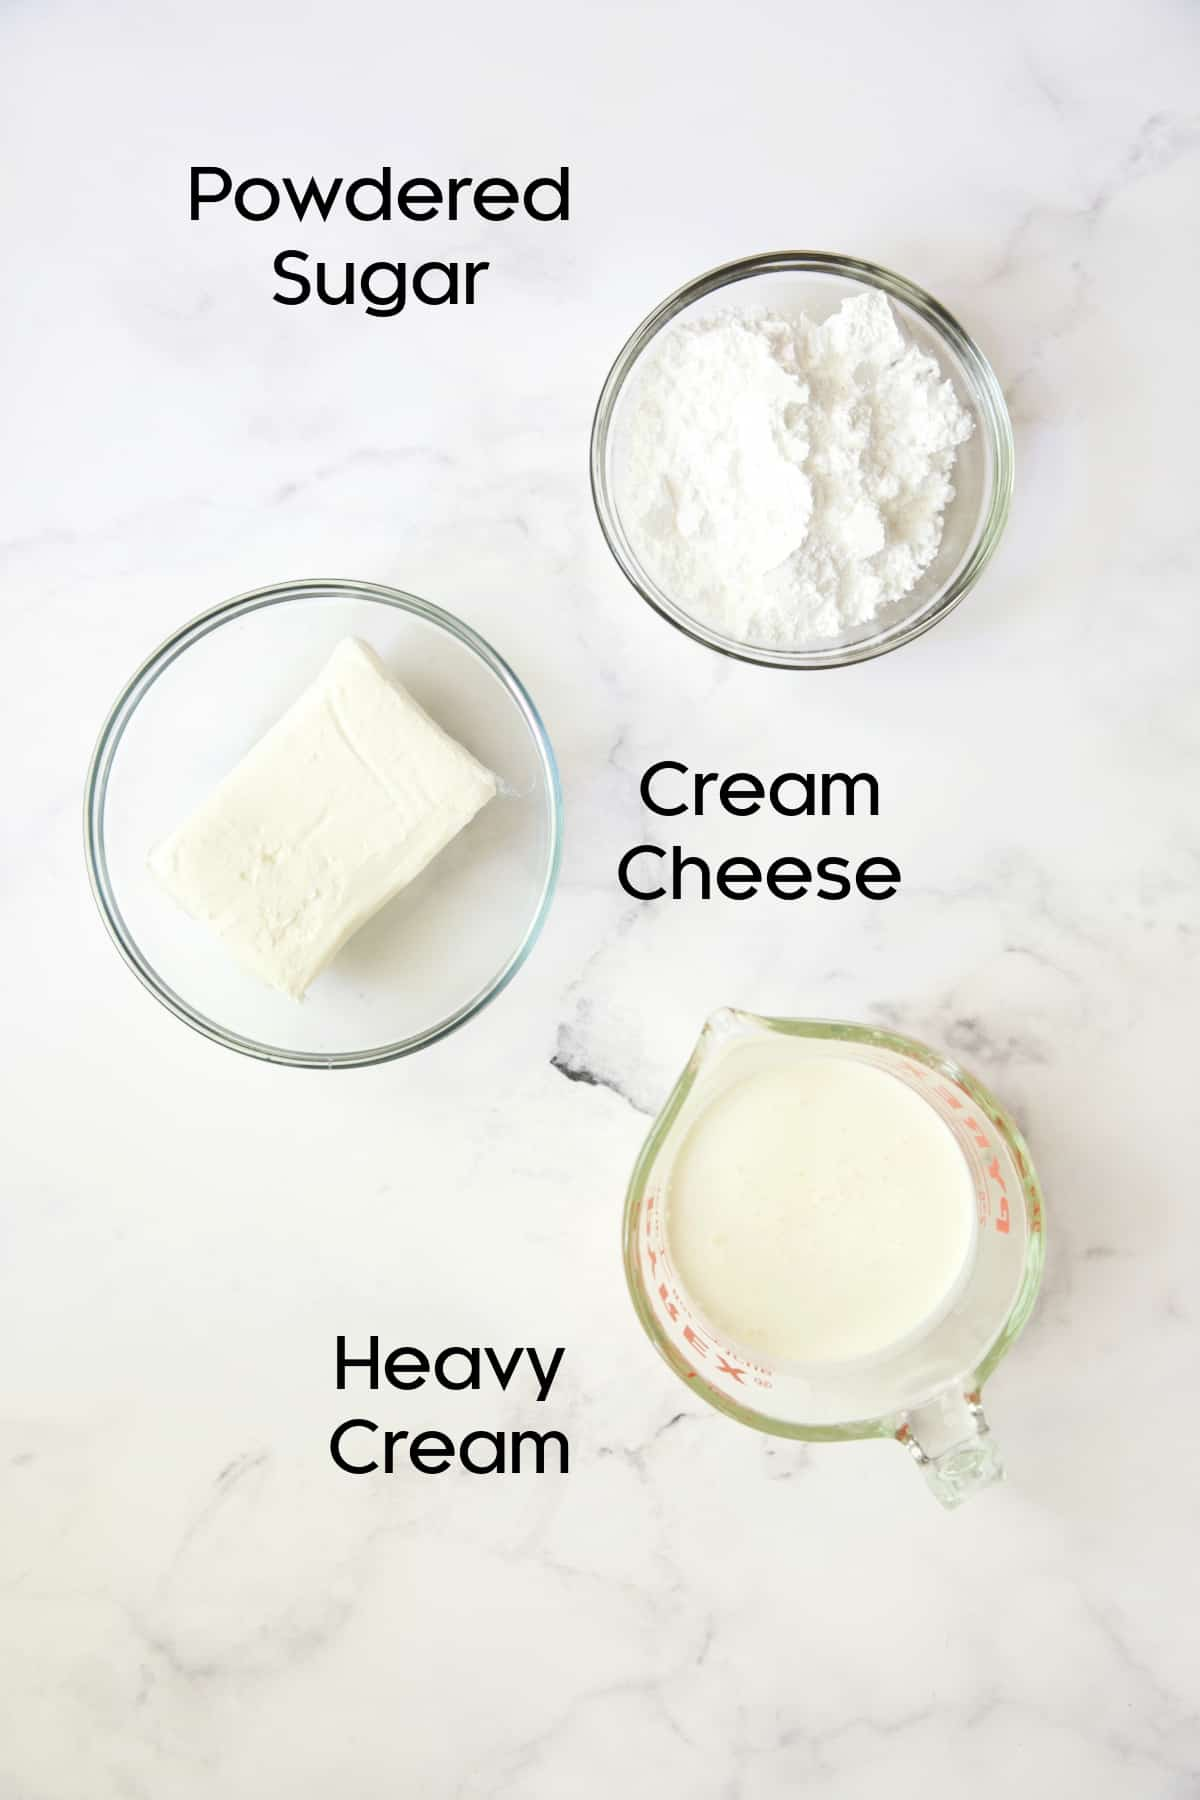 Ingredients for cream cheese layer in glass bowls.